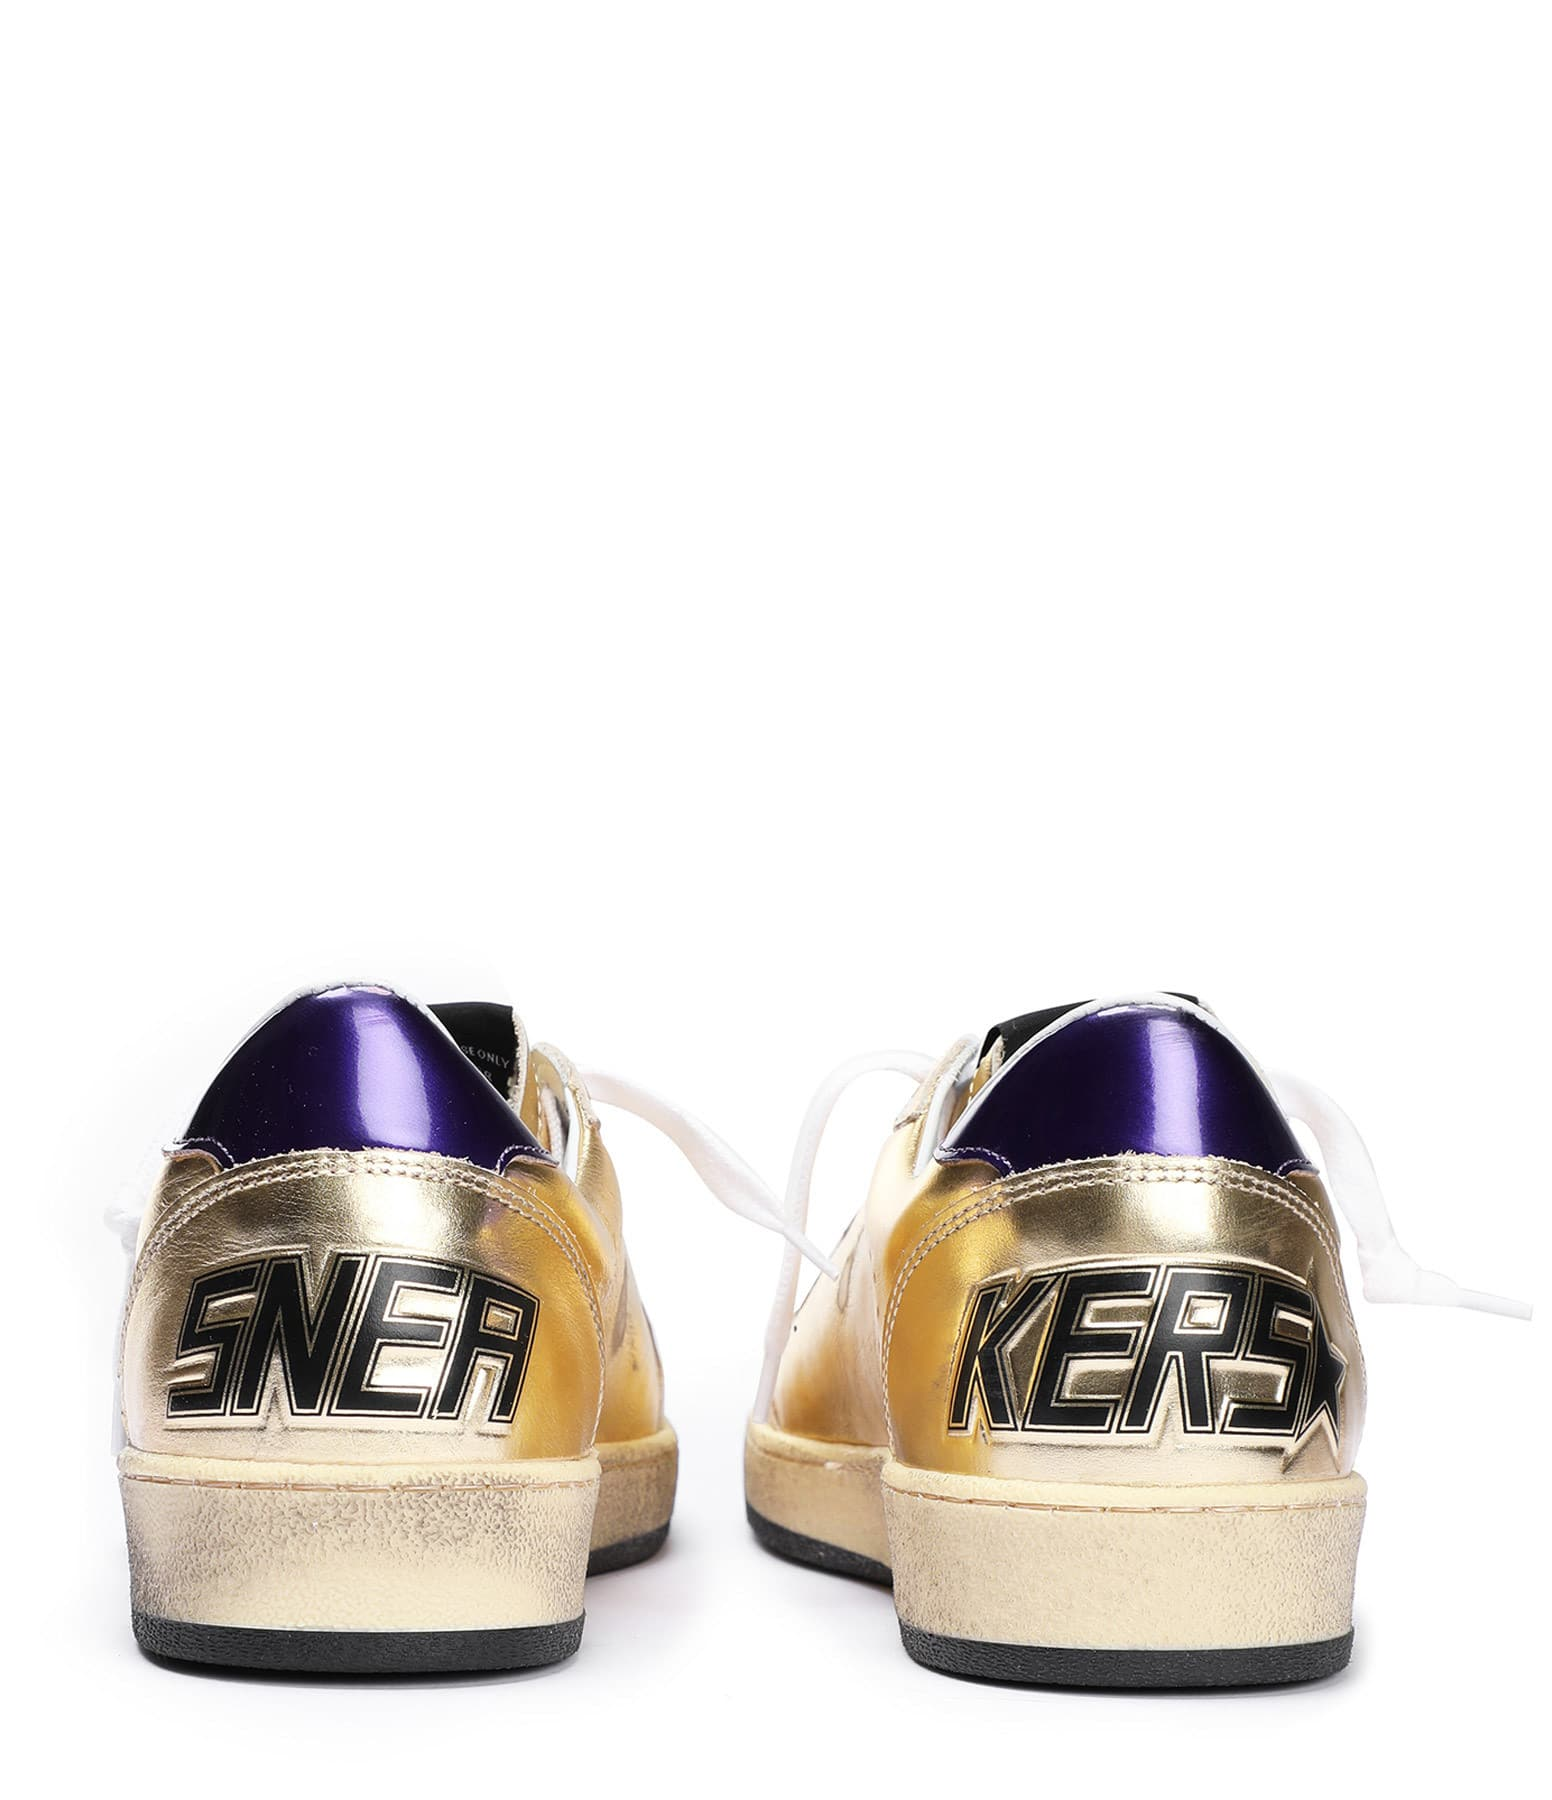 GOLDEN GOOSE - Baskets Ball Star Cuir Champa Violet